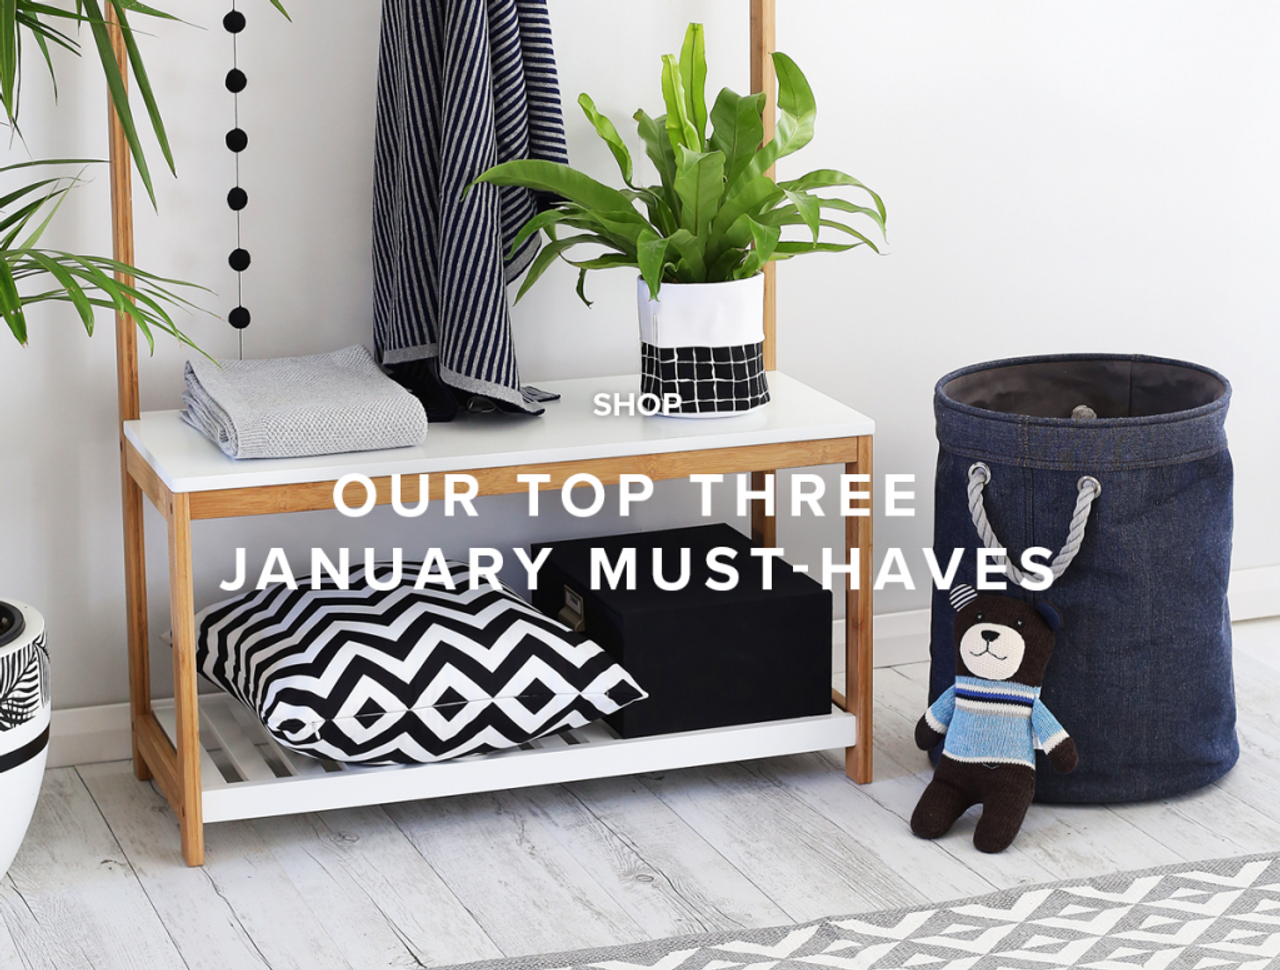 Our Top Three January Must-Haves